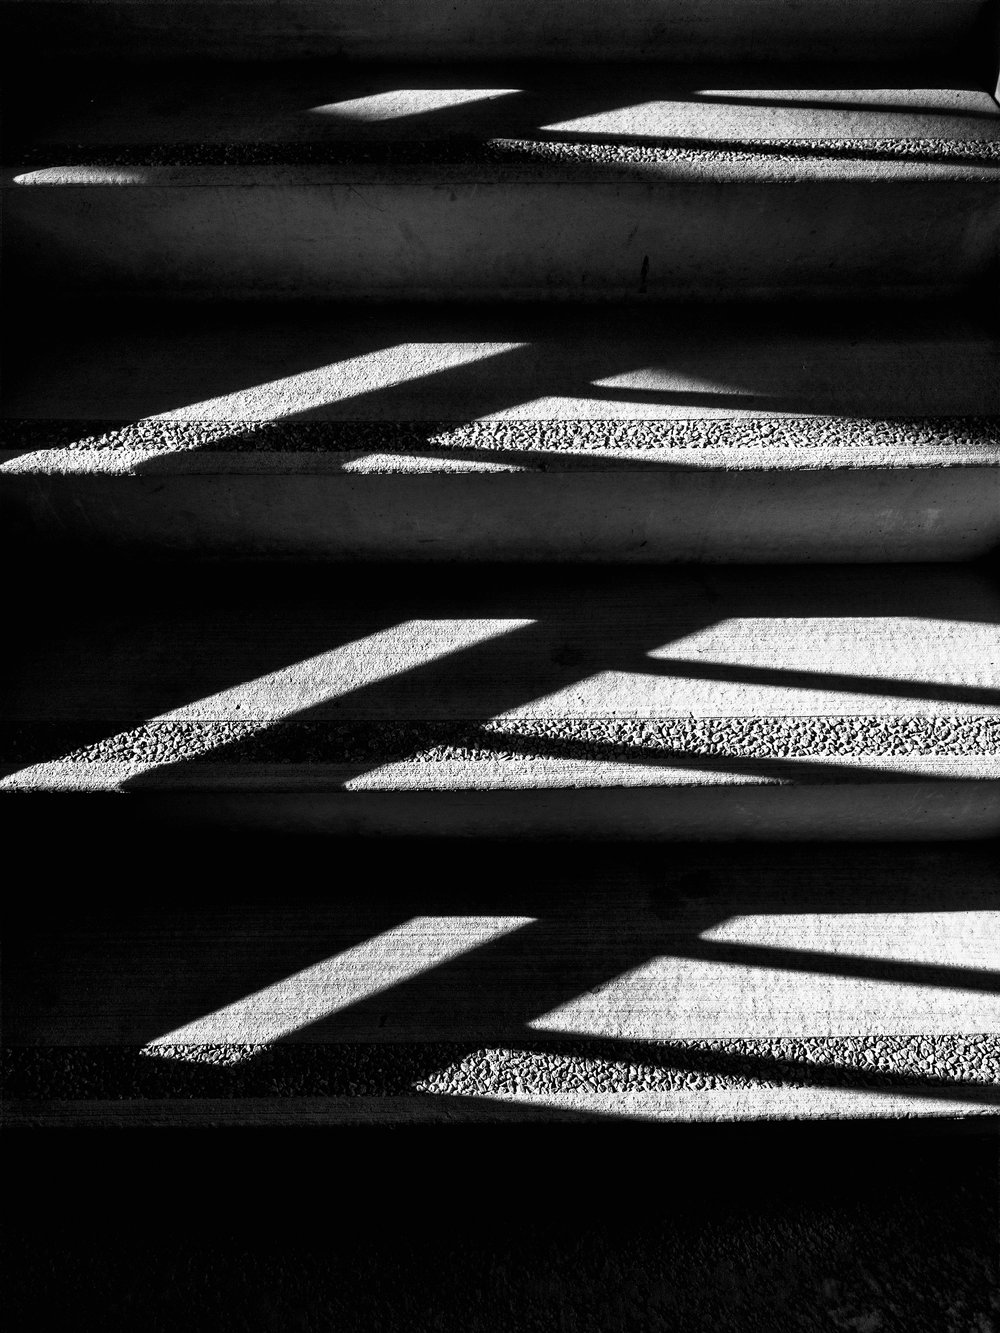 Abstract in Black & White #27